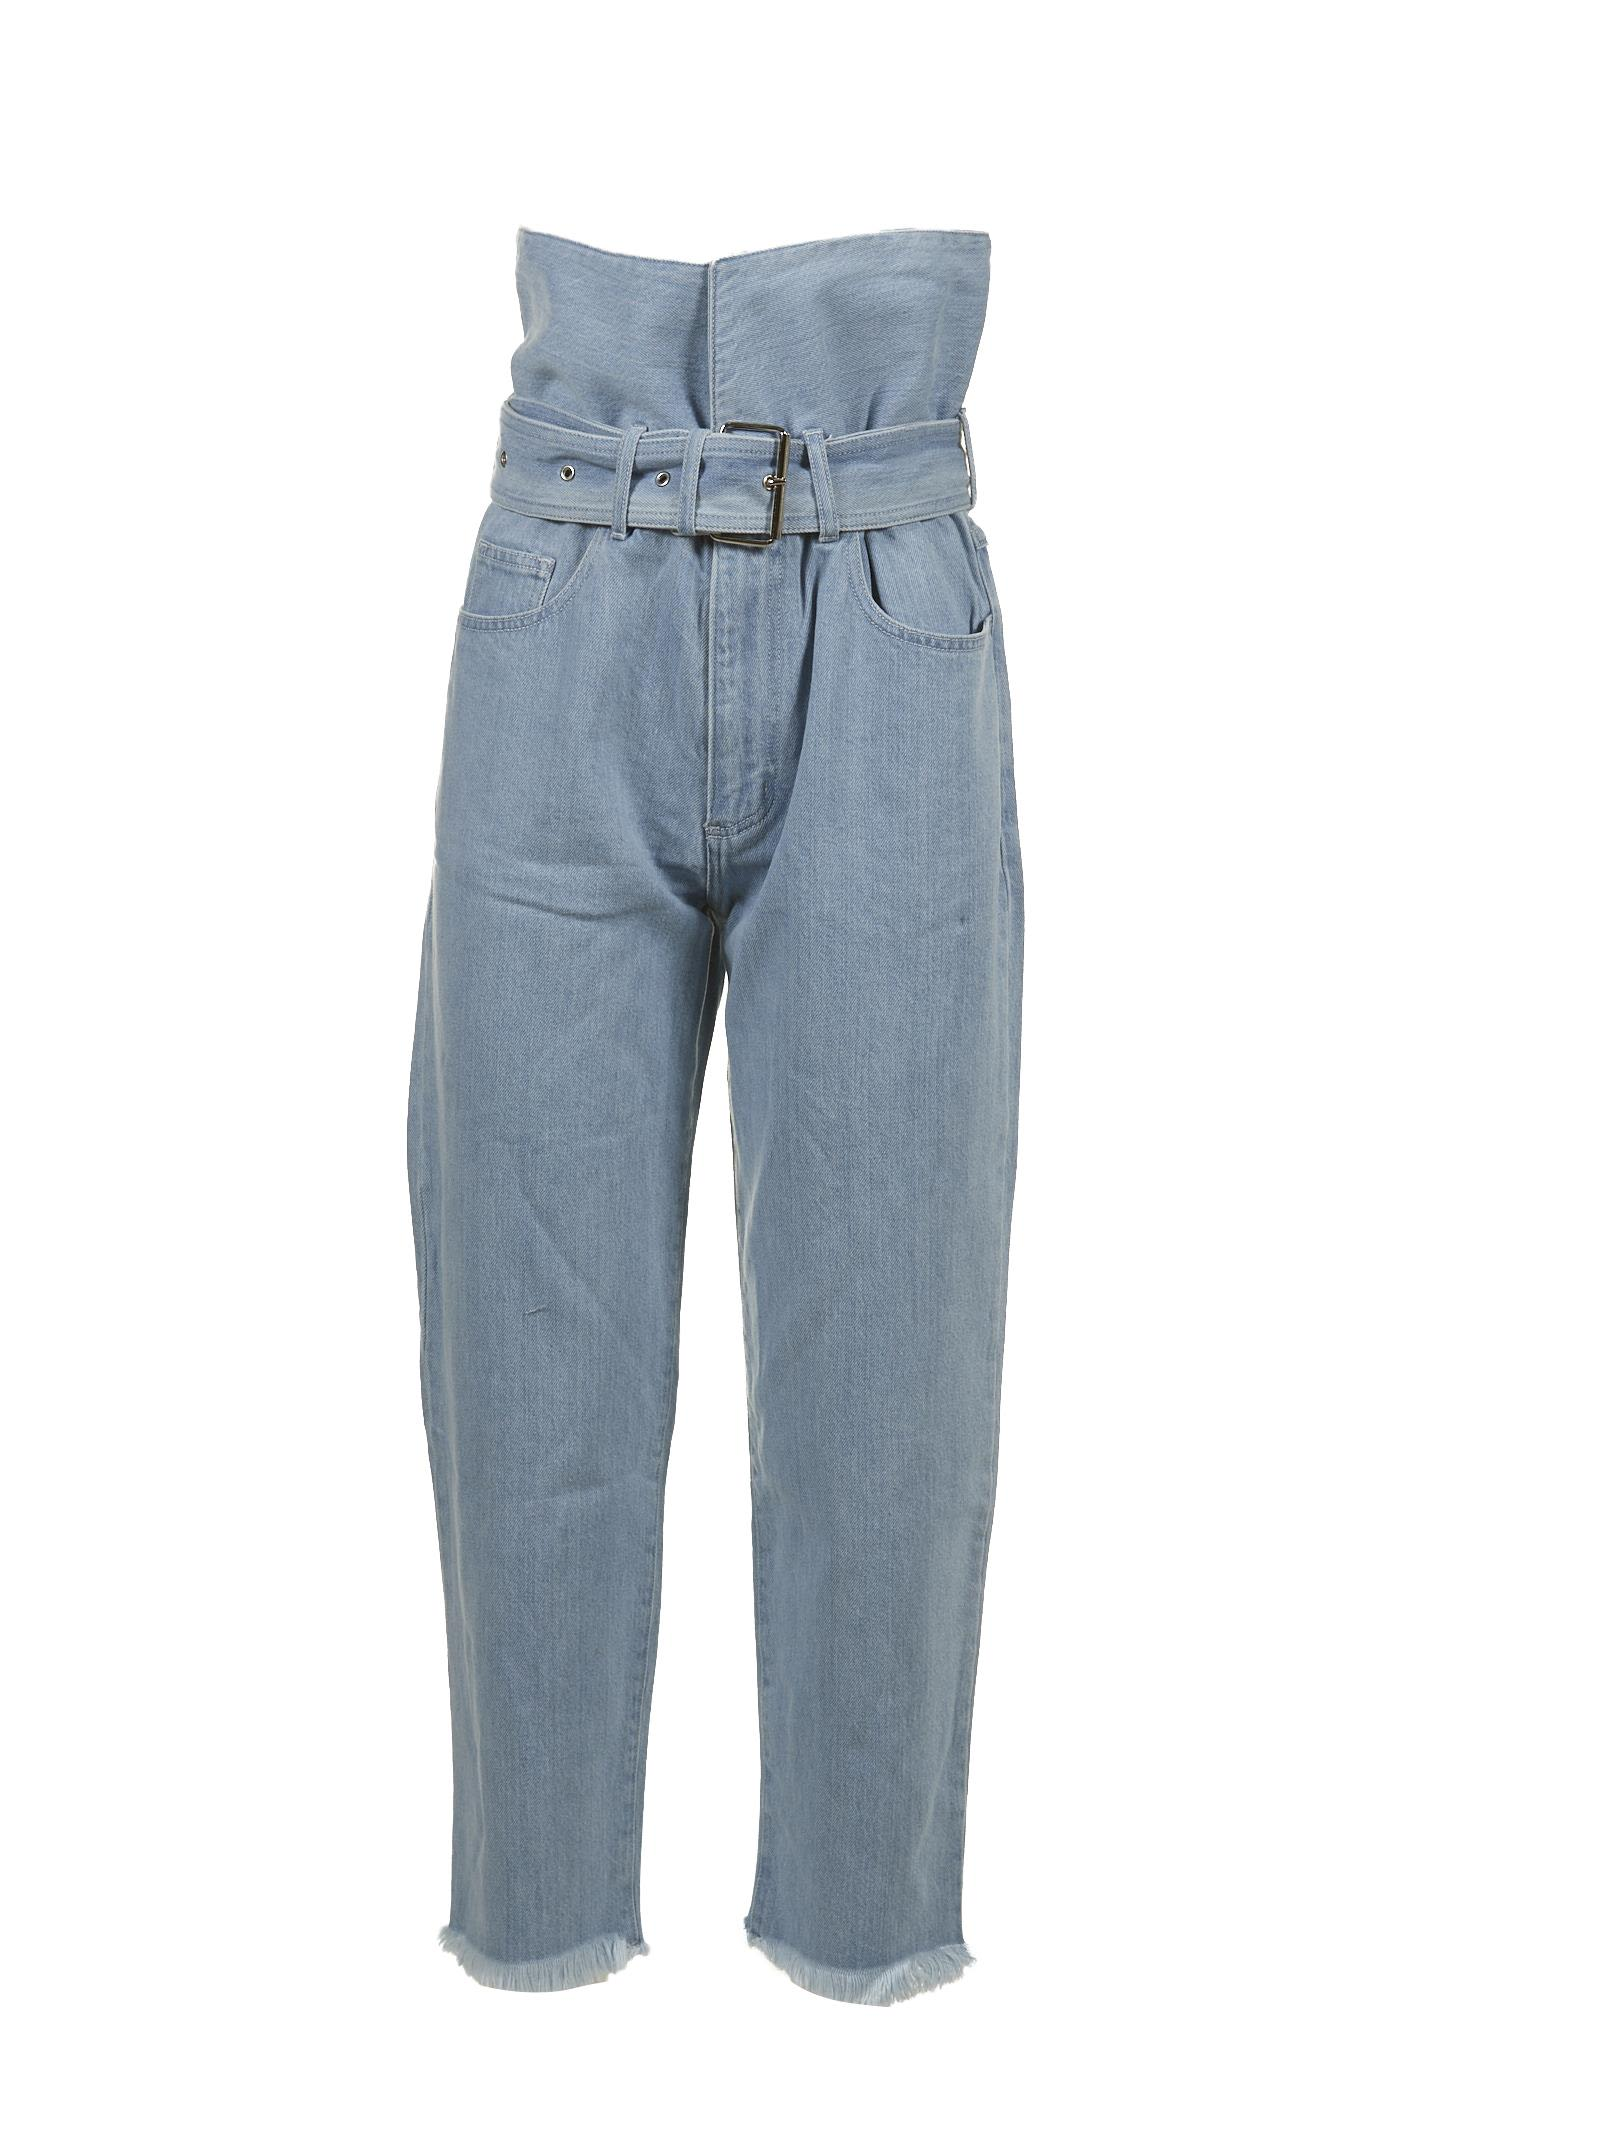 Marques Almeida Belted Raw Hem Jeans